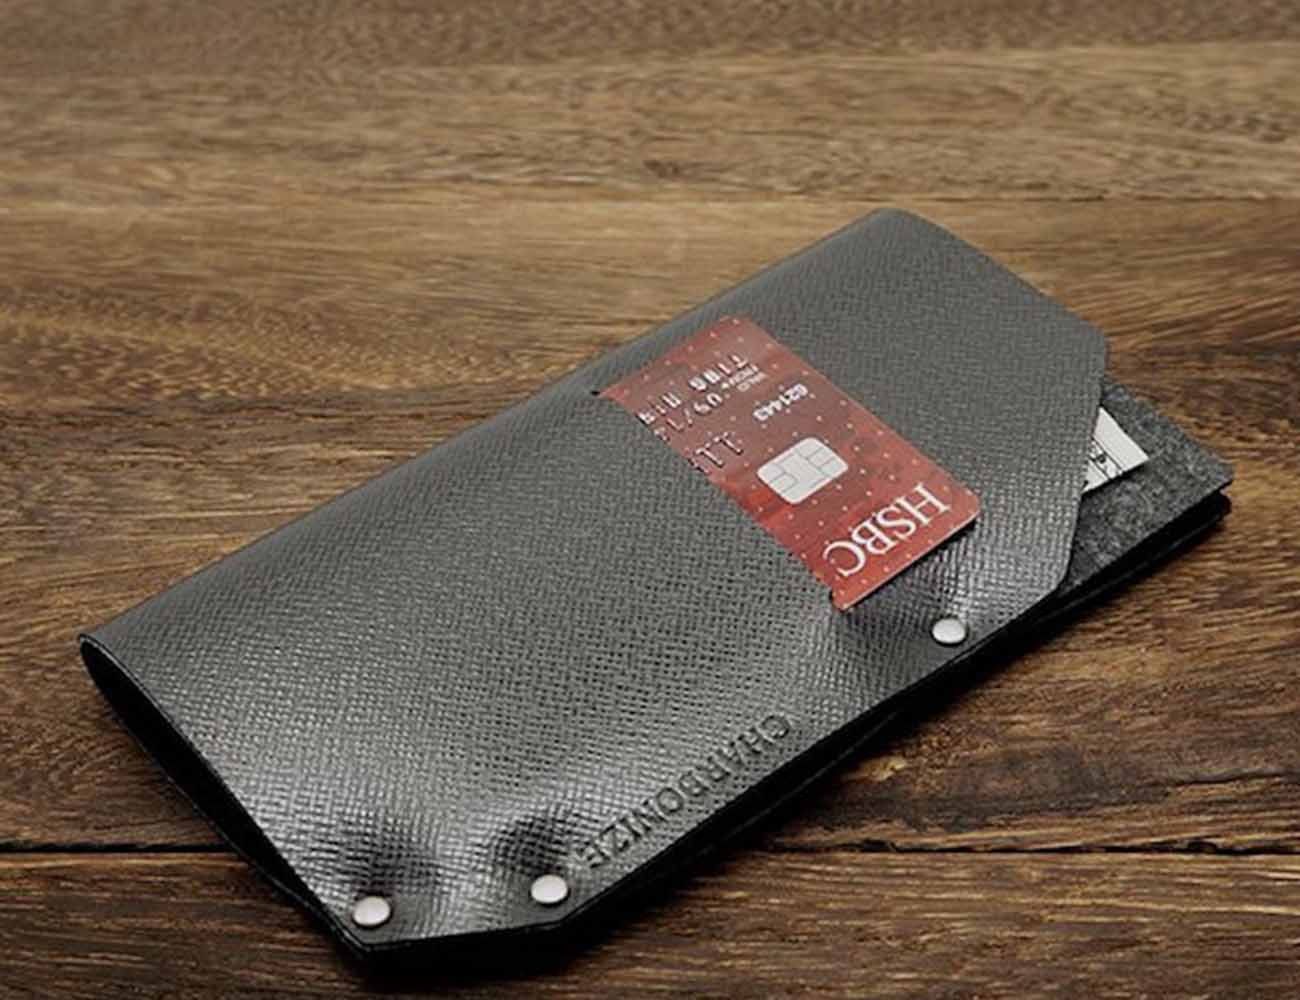 Leather iPhone Sleeve and Wallet by Charbonize